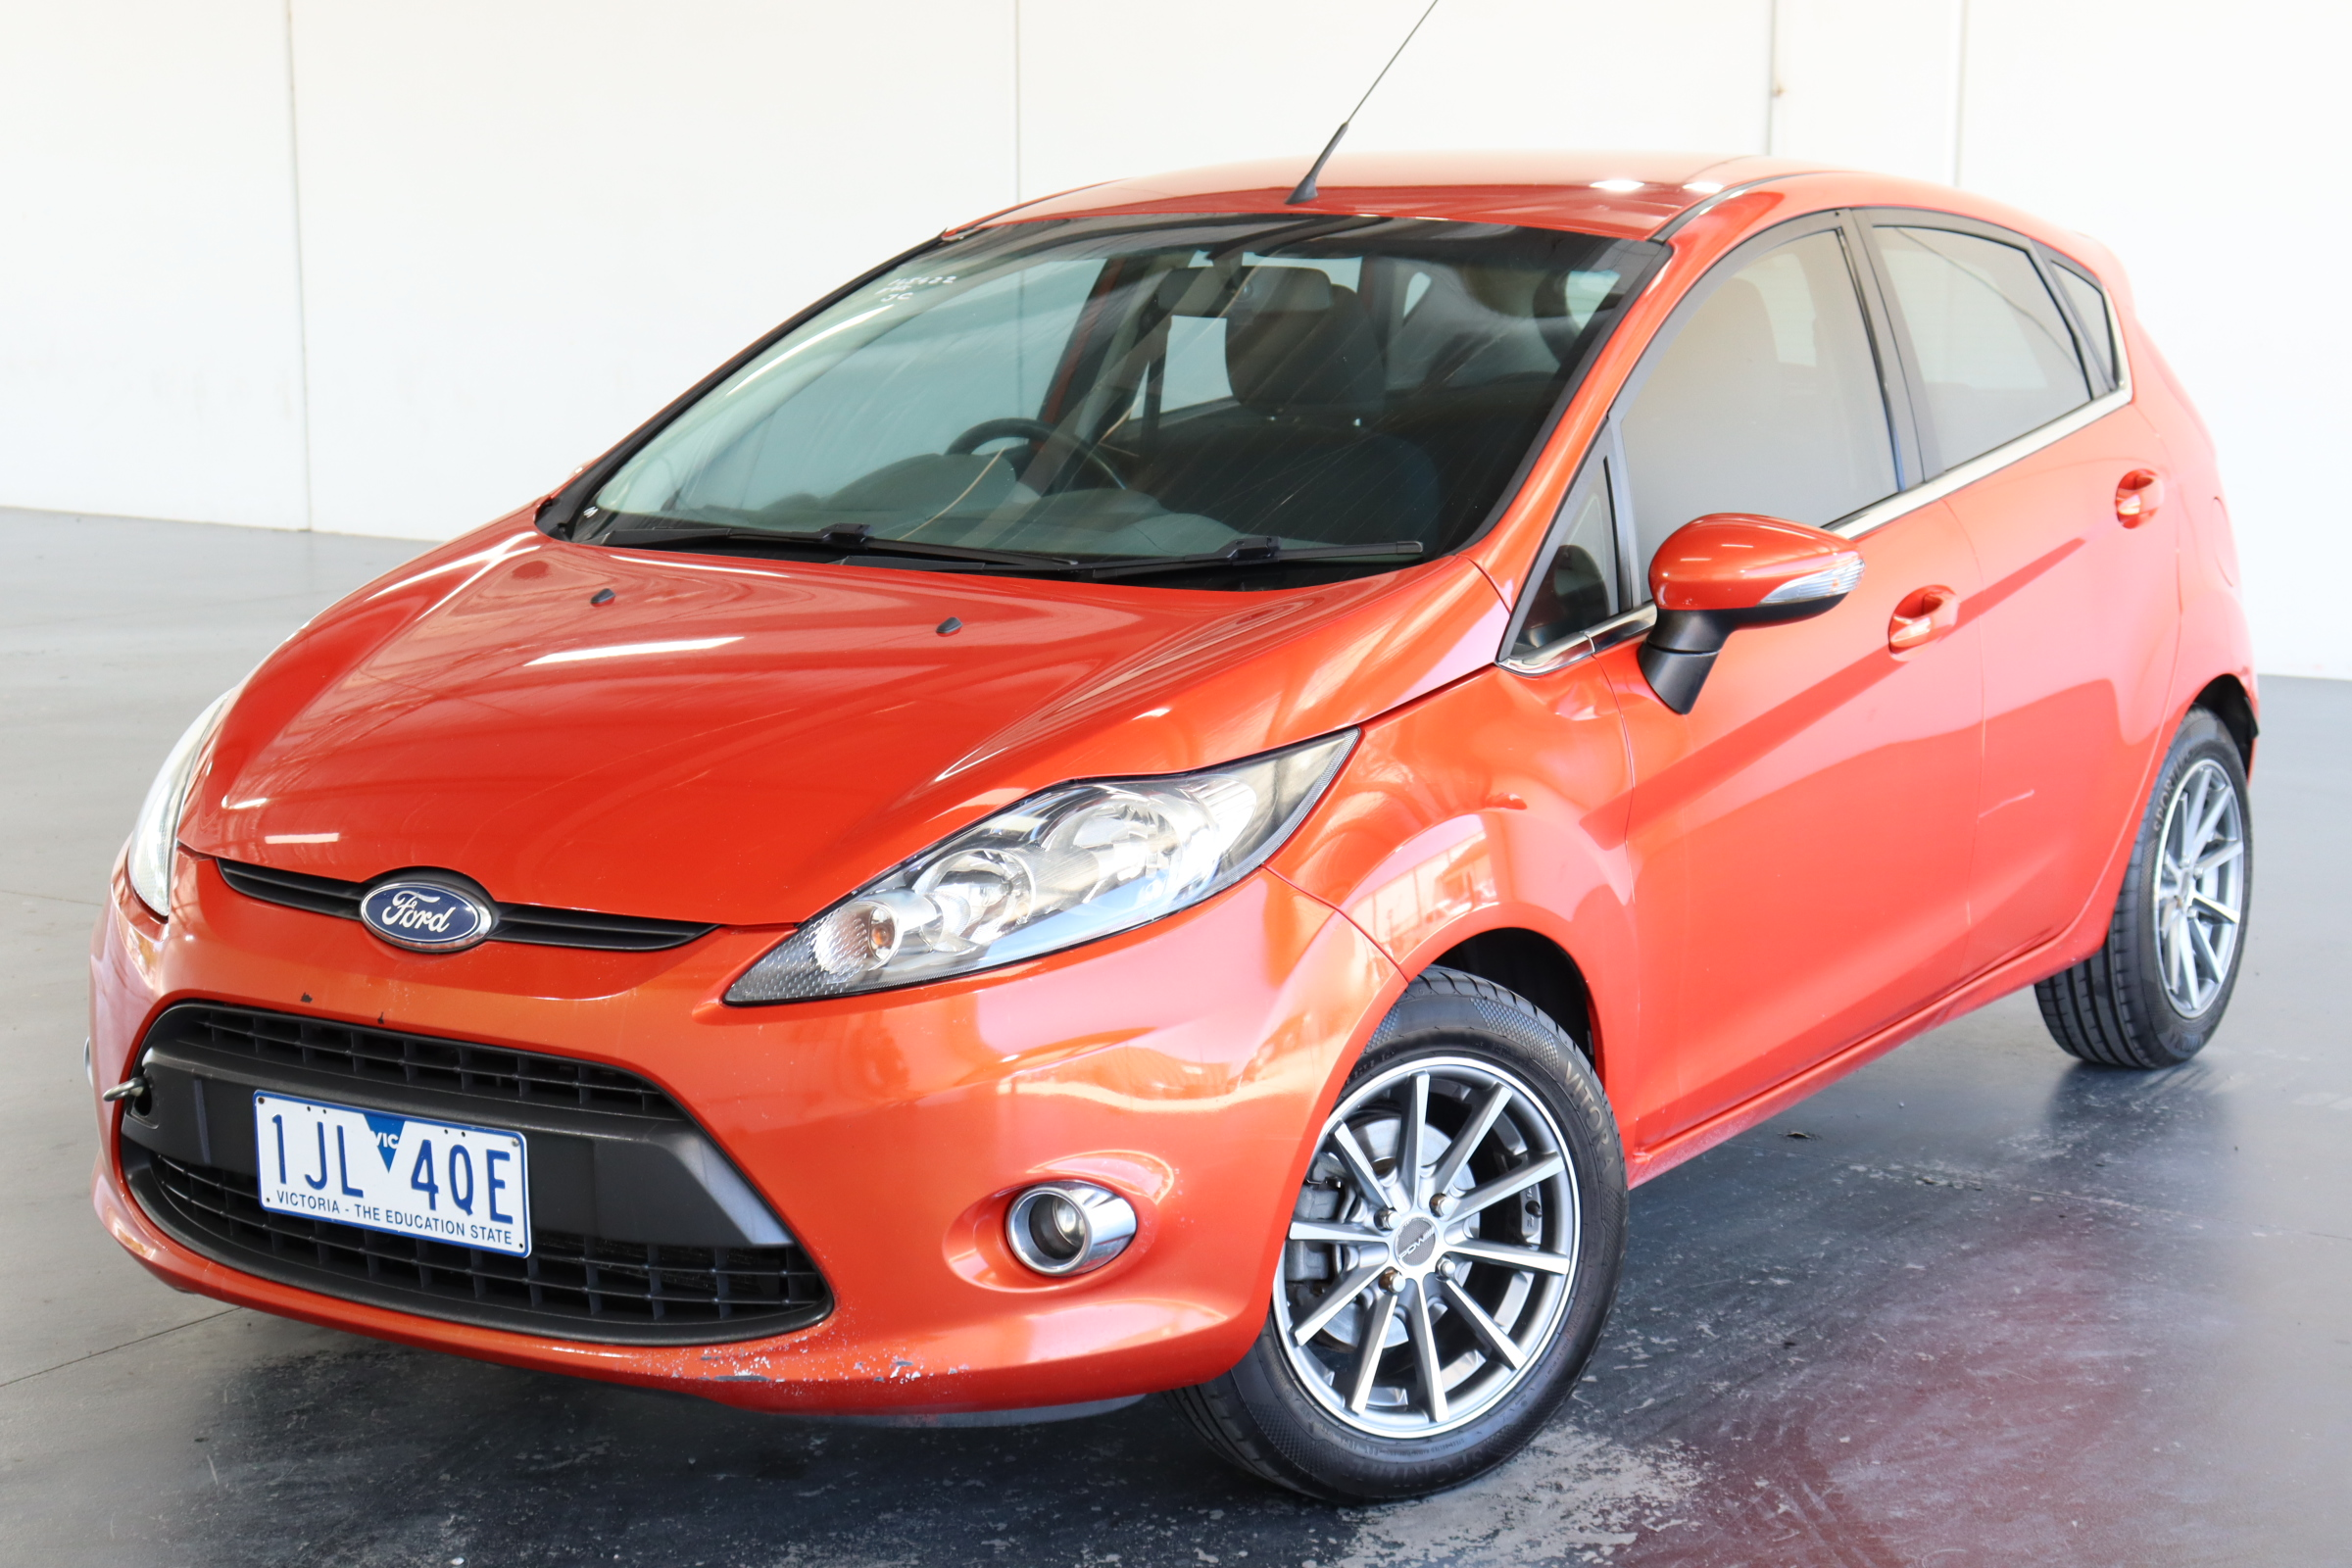 2011 Ford Fiesta Zetec WT Automatic Hatchback (WOVR)